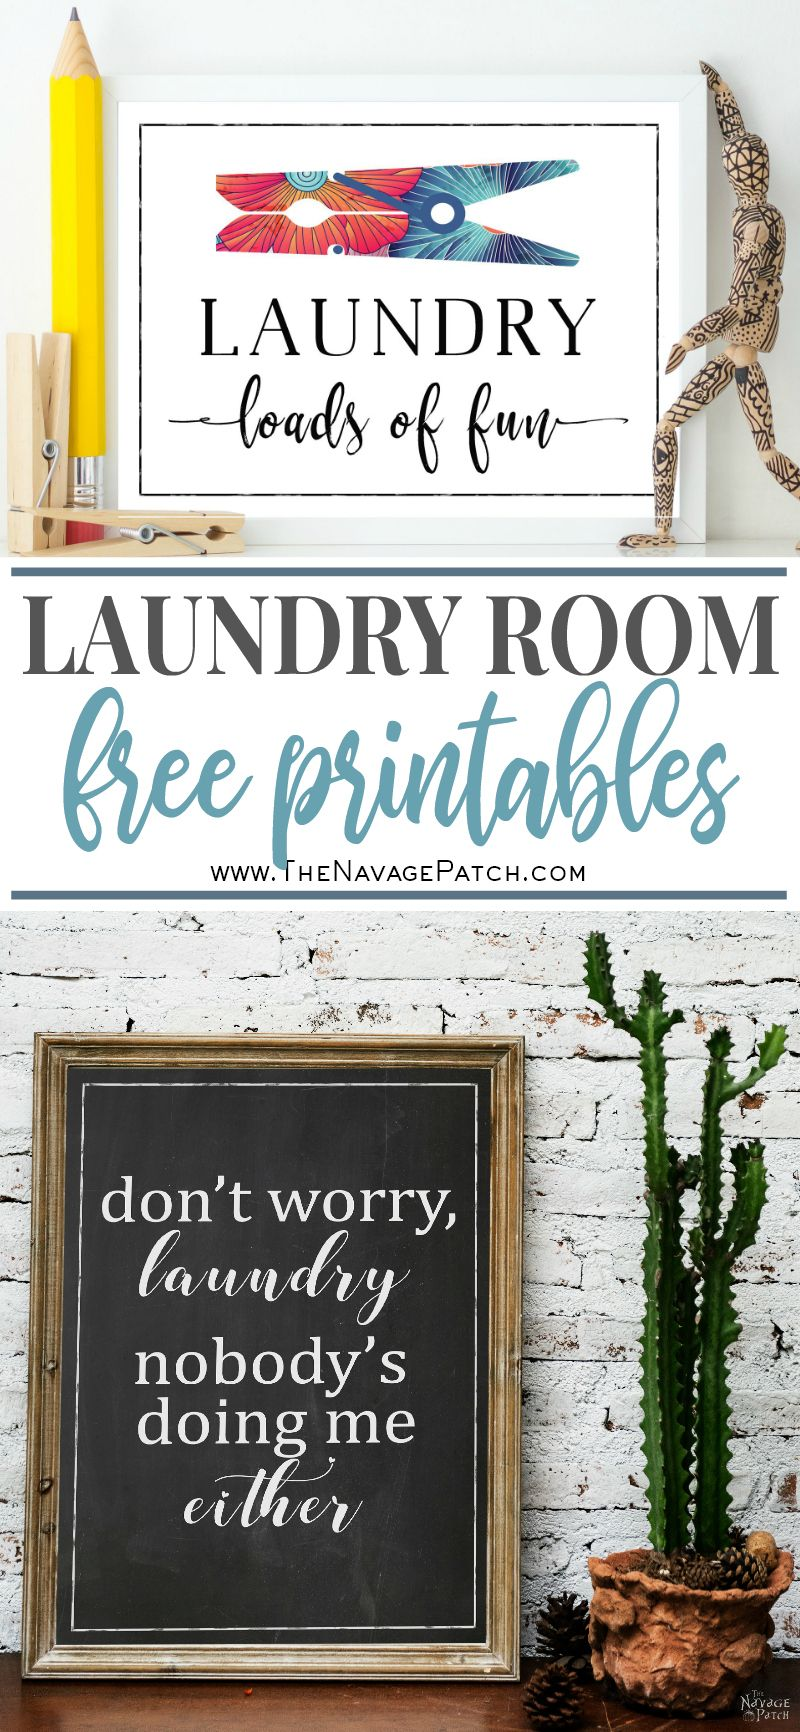 Free Printable Wall Art For Laundry Room The Navage Patch